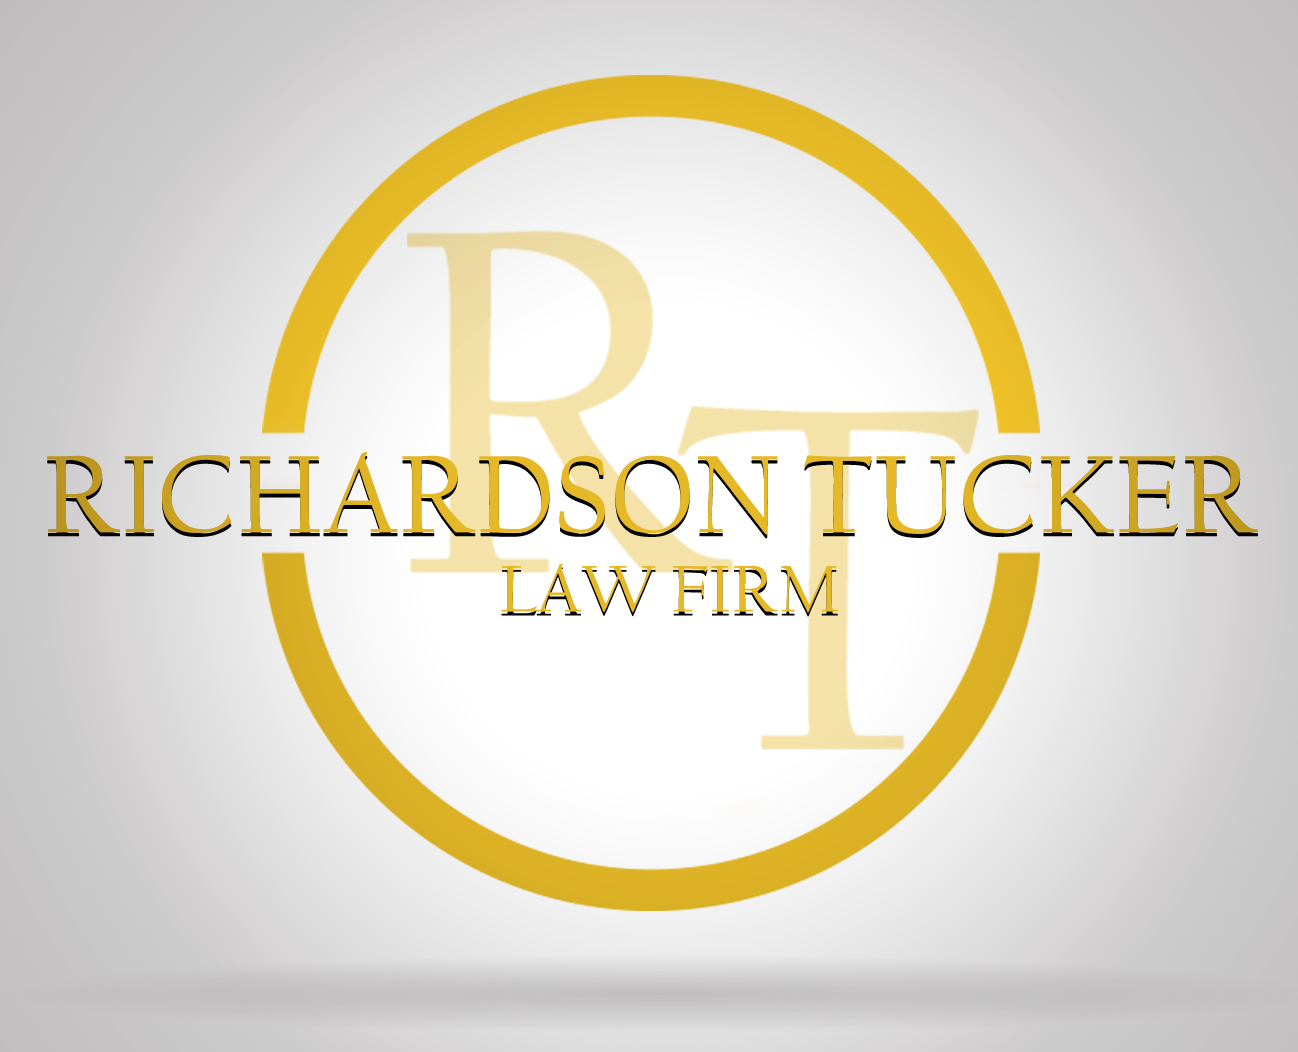 RICHARDSON TUCKER LAW FIRM